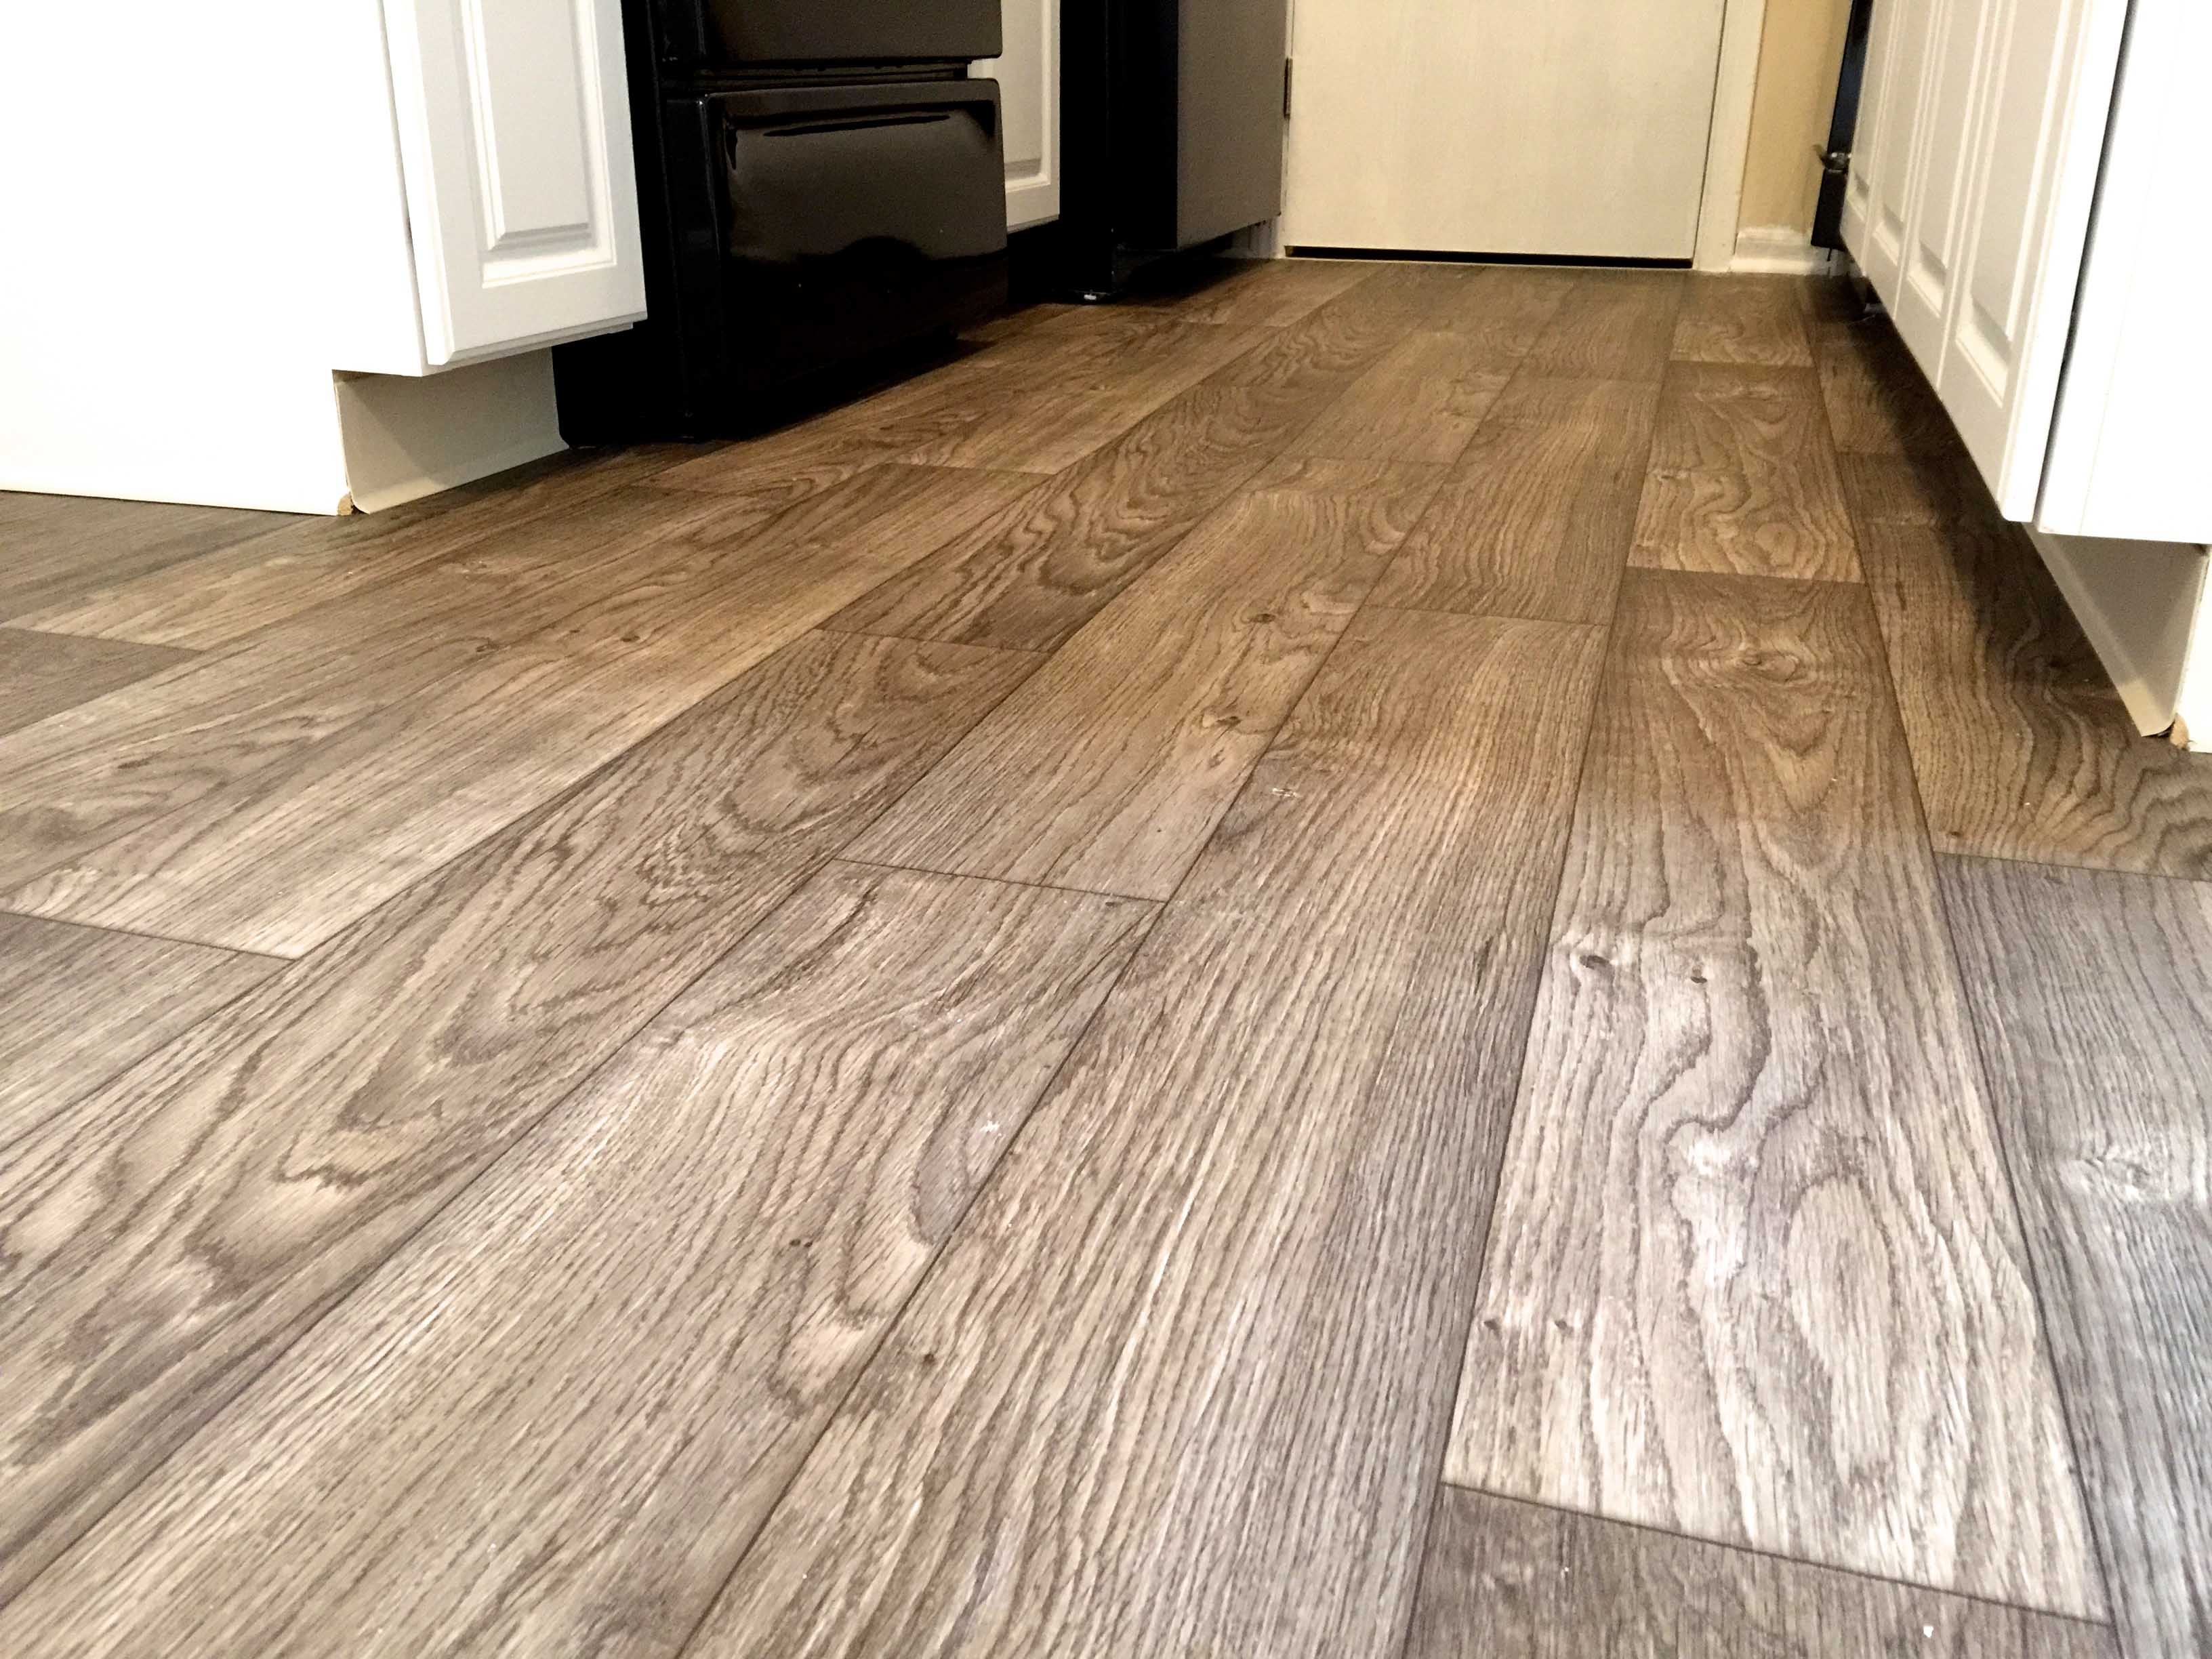 Imitation Wood Flooring Vinyl